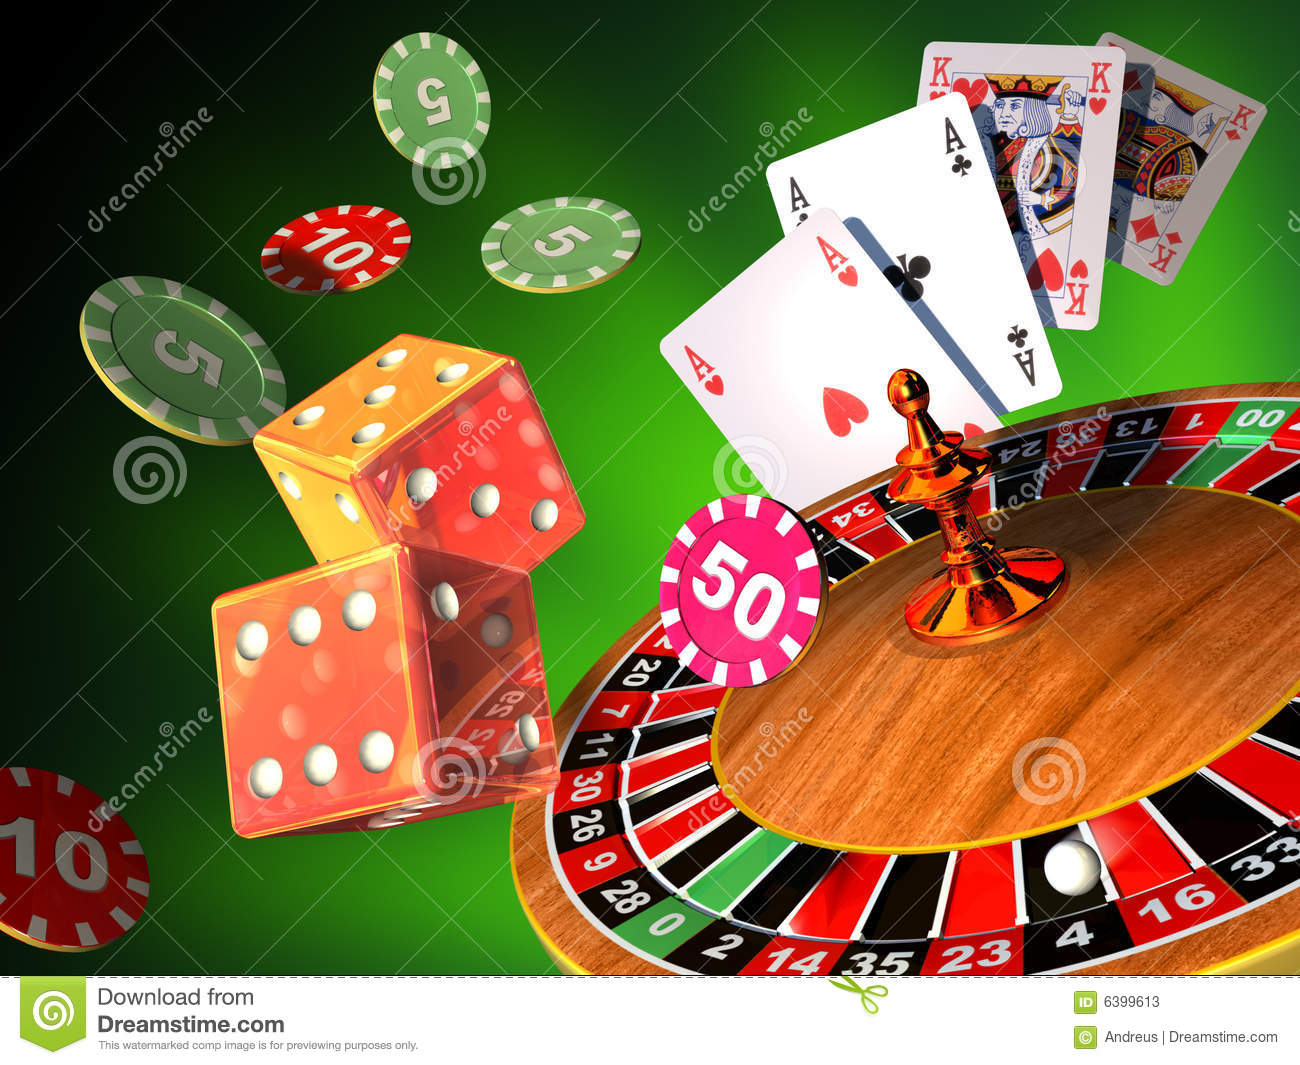 Free download gambling games bingo games casino